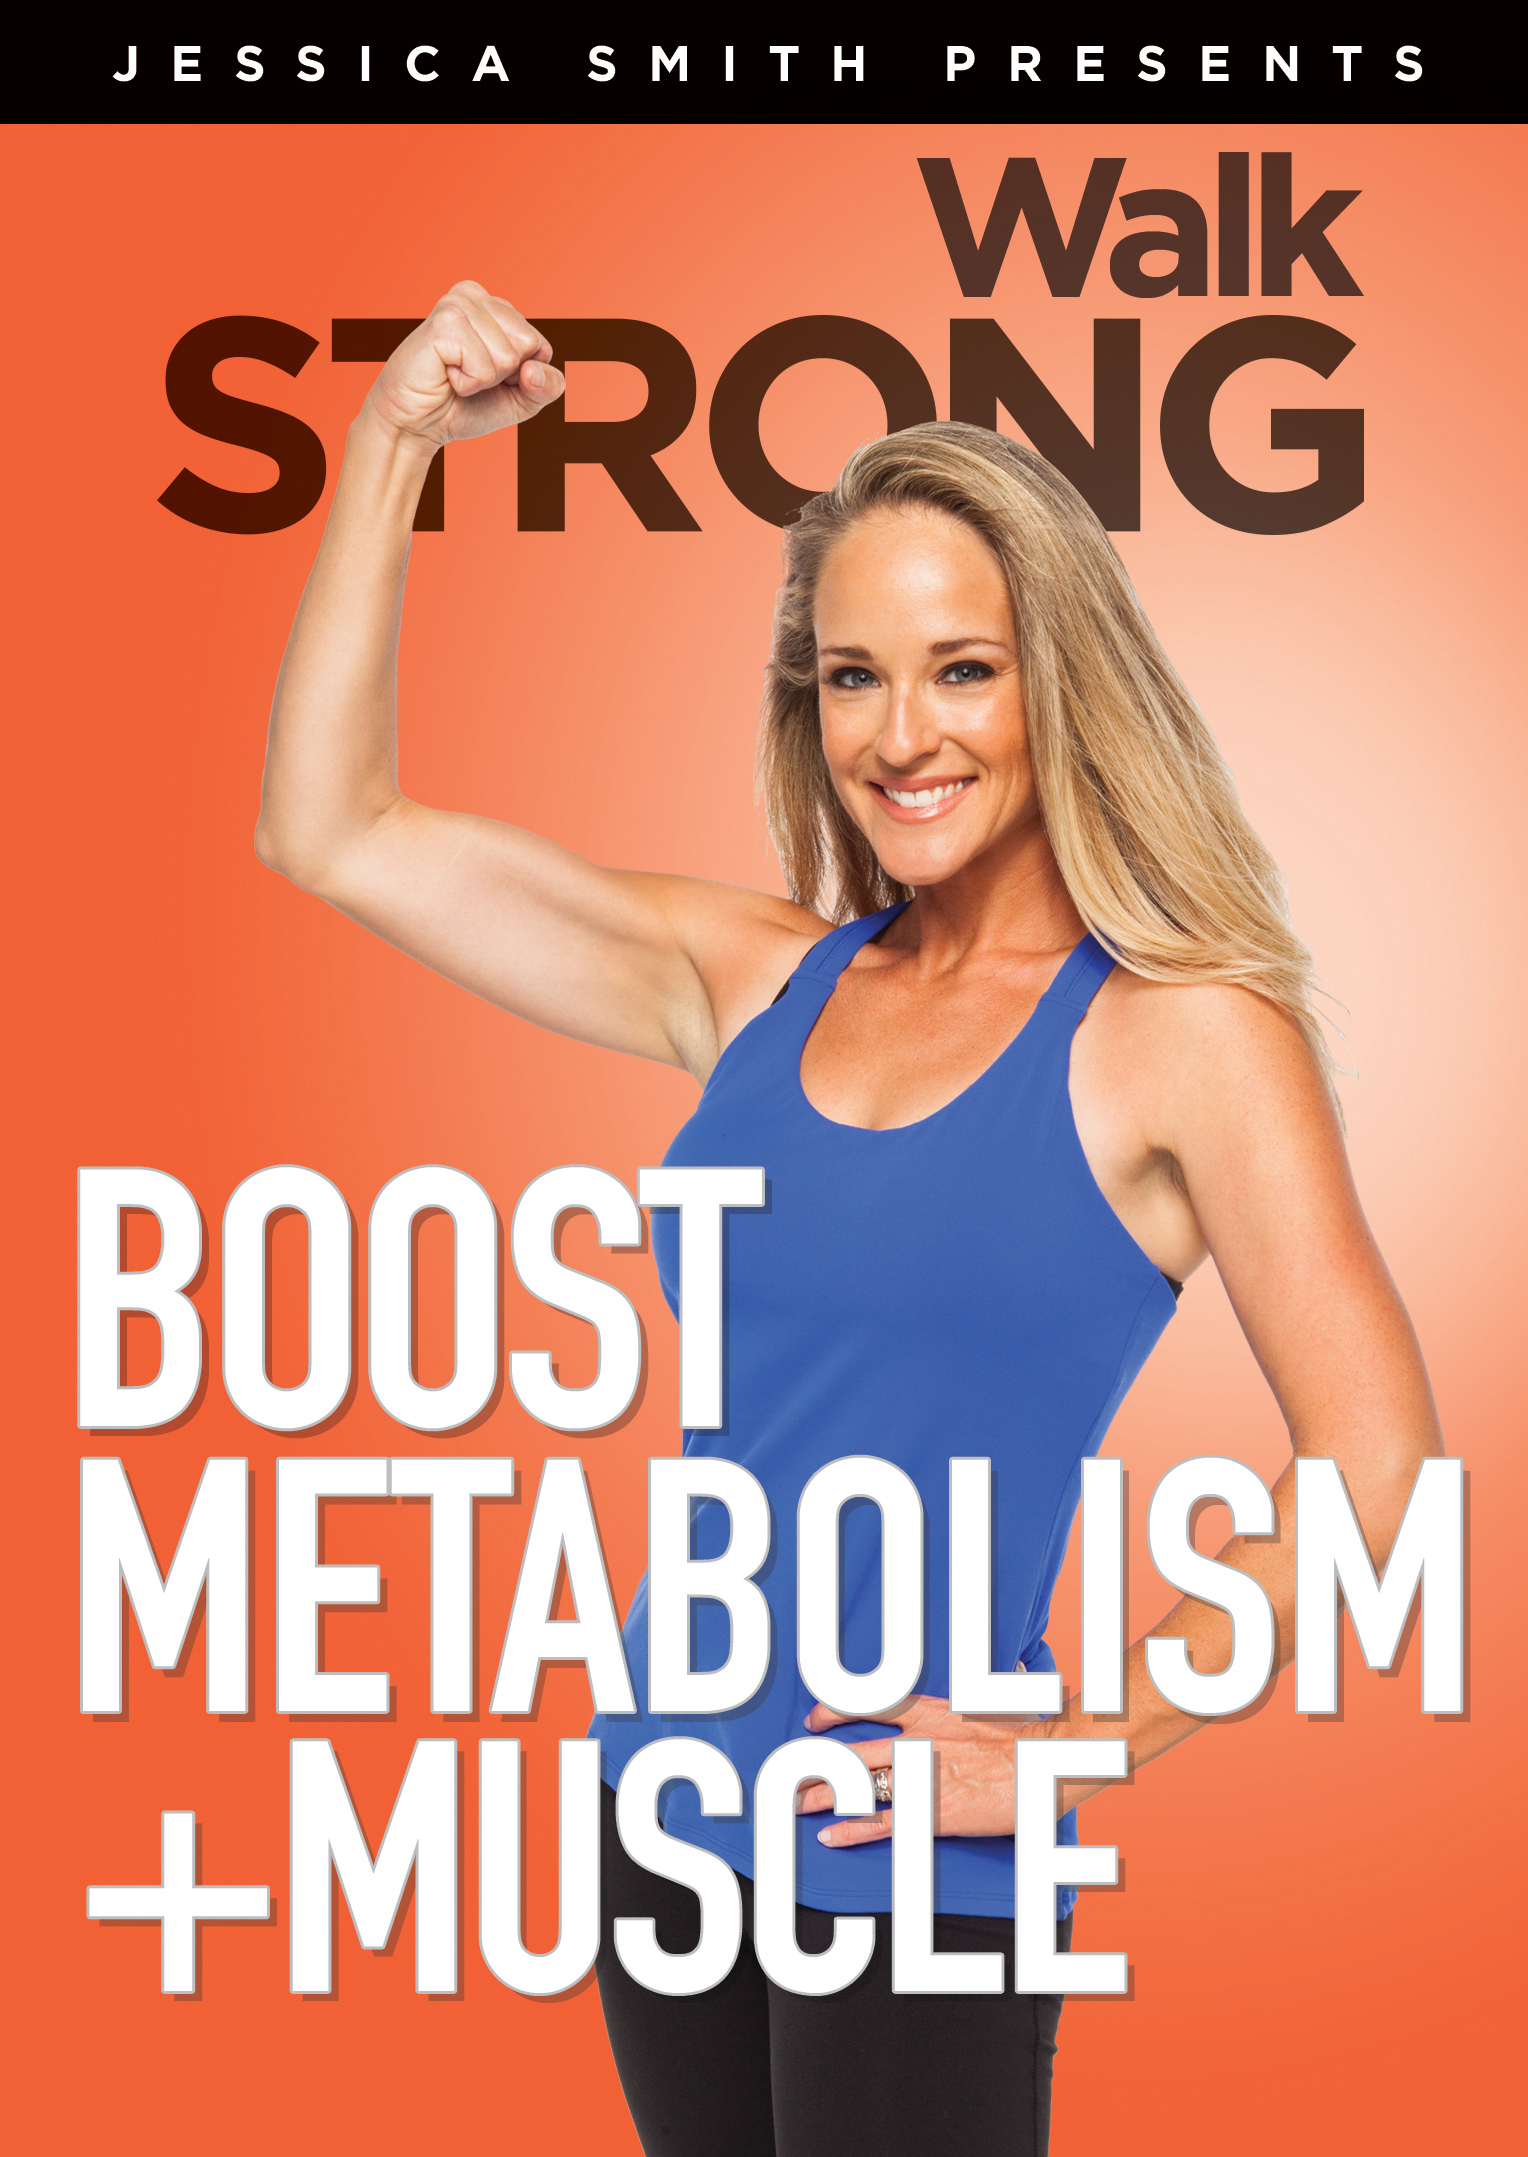 Jessica Smith - Walk Strong - Boost Matabolism + Muscle